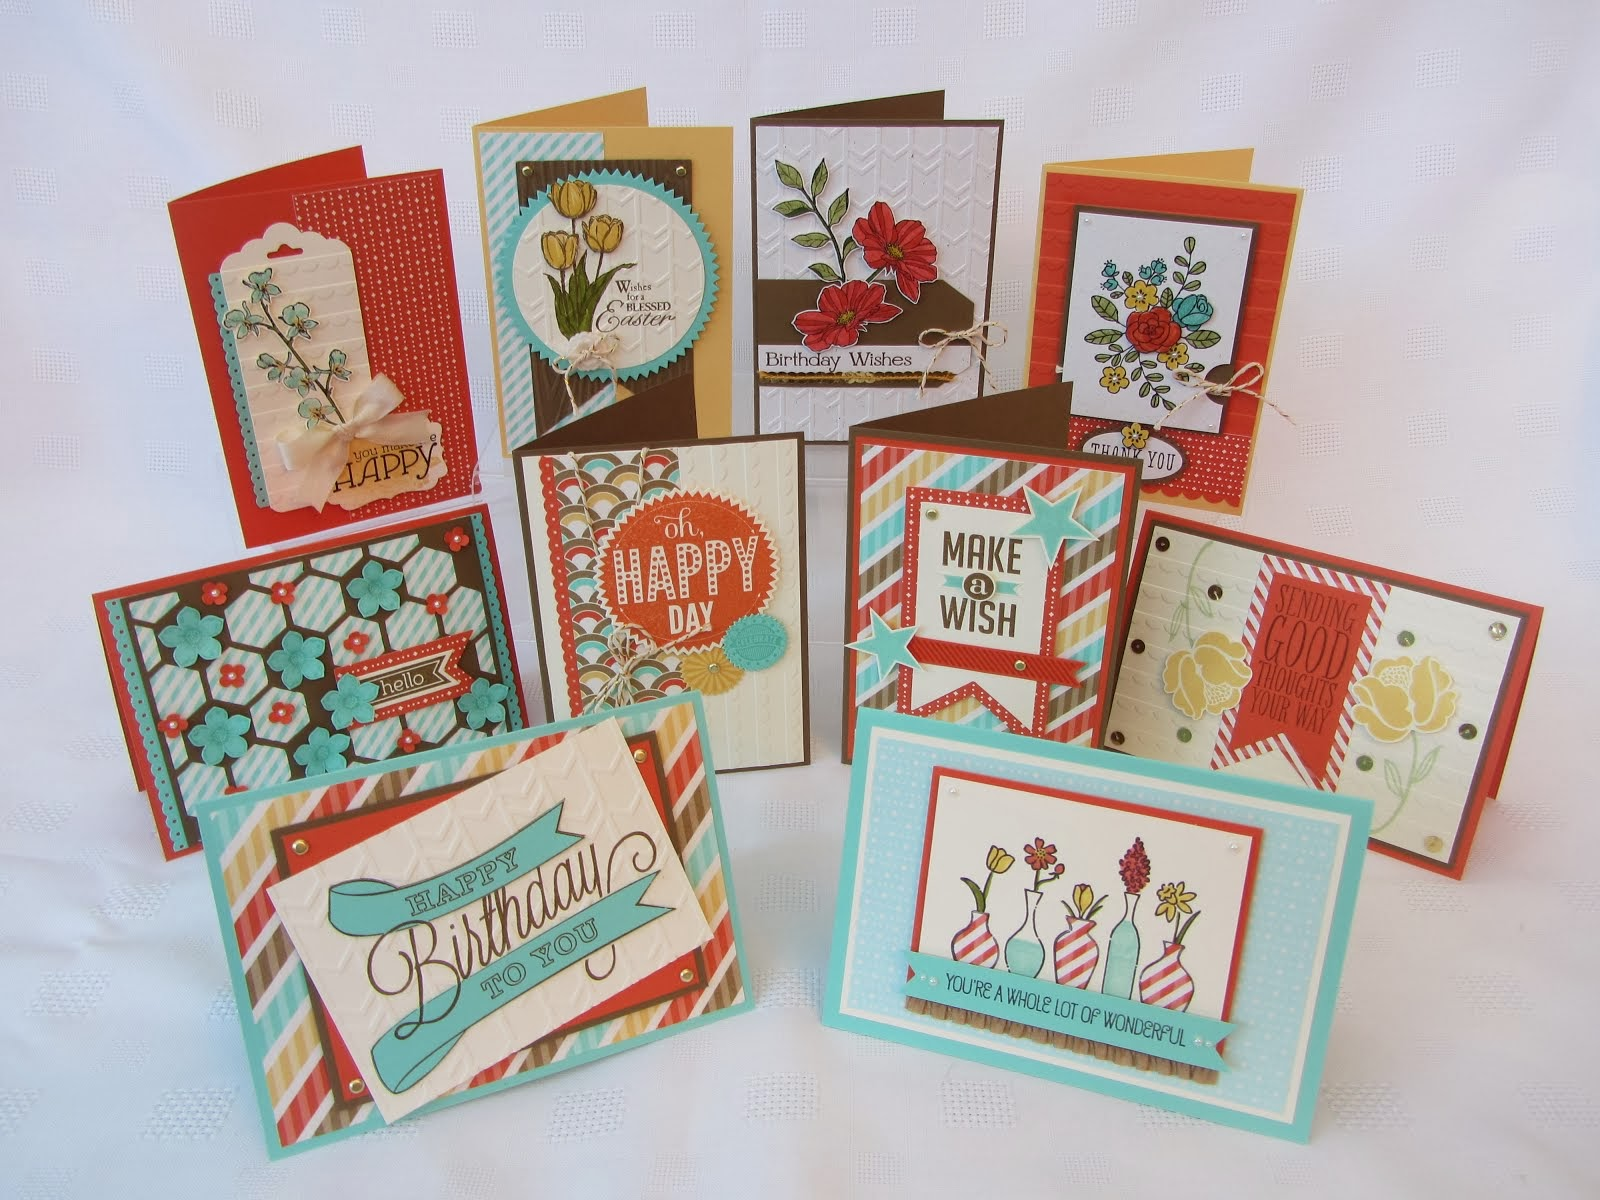 2014 Spring Mini Card Buffet